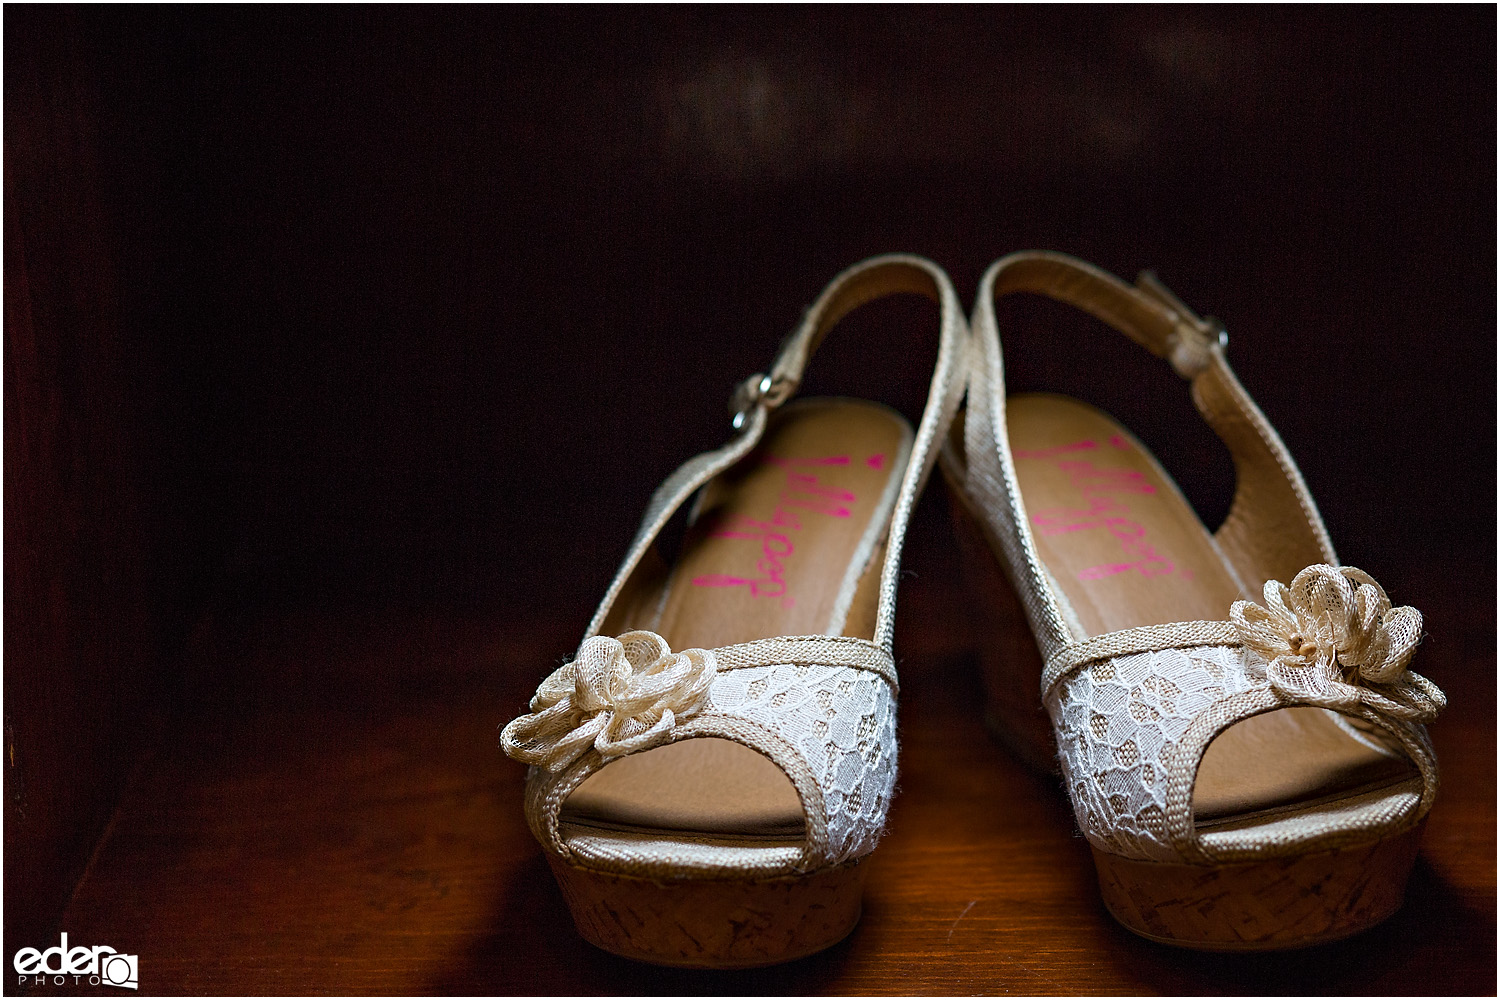 Heritage Park wedding details - shoes